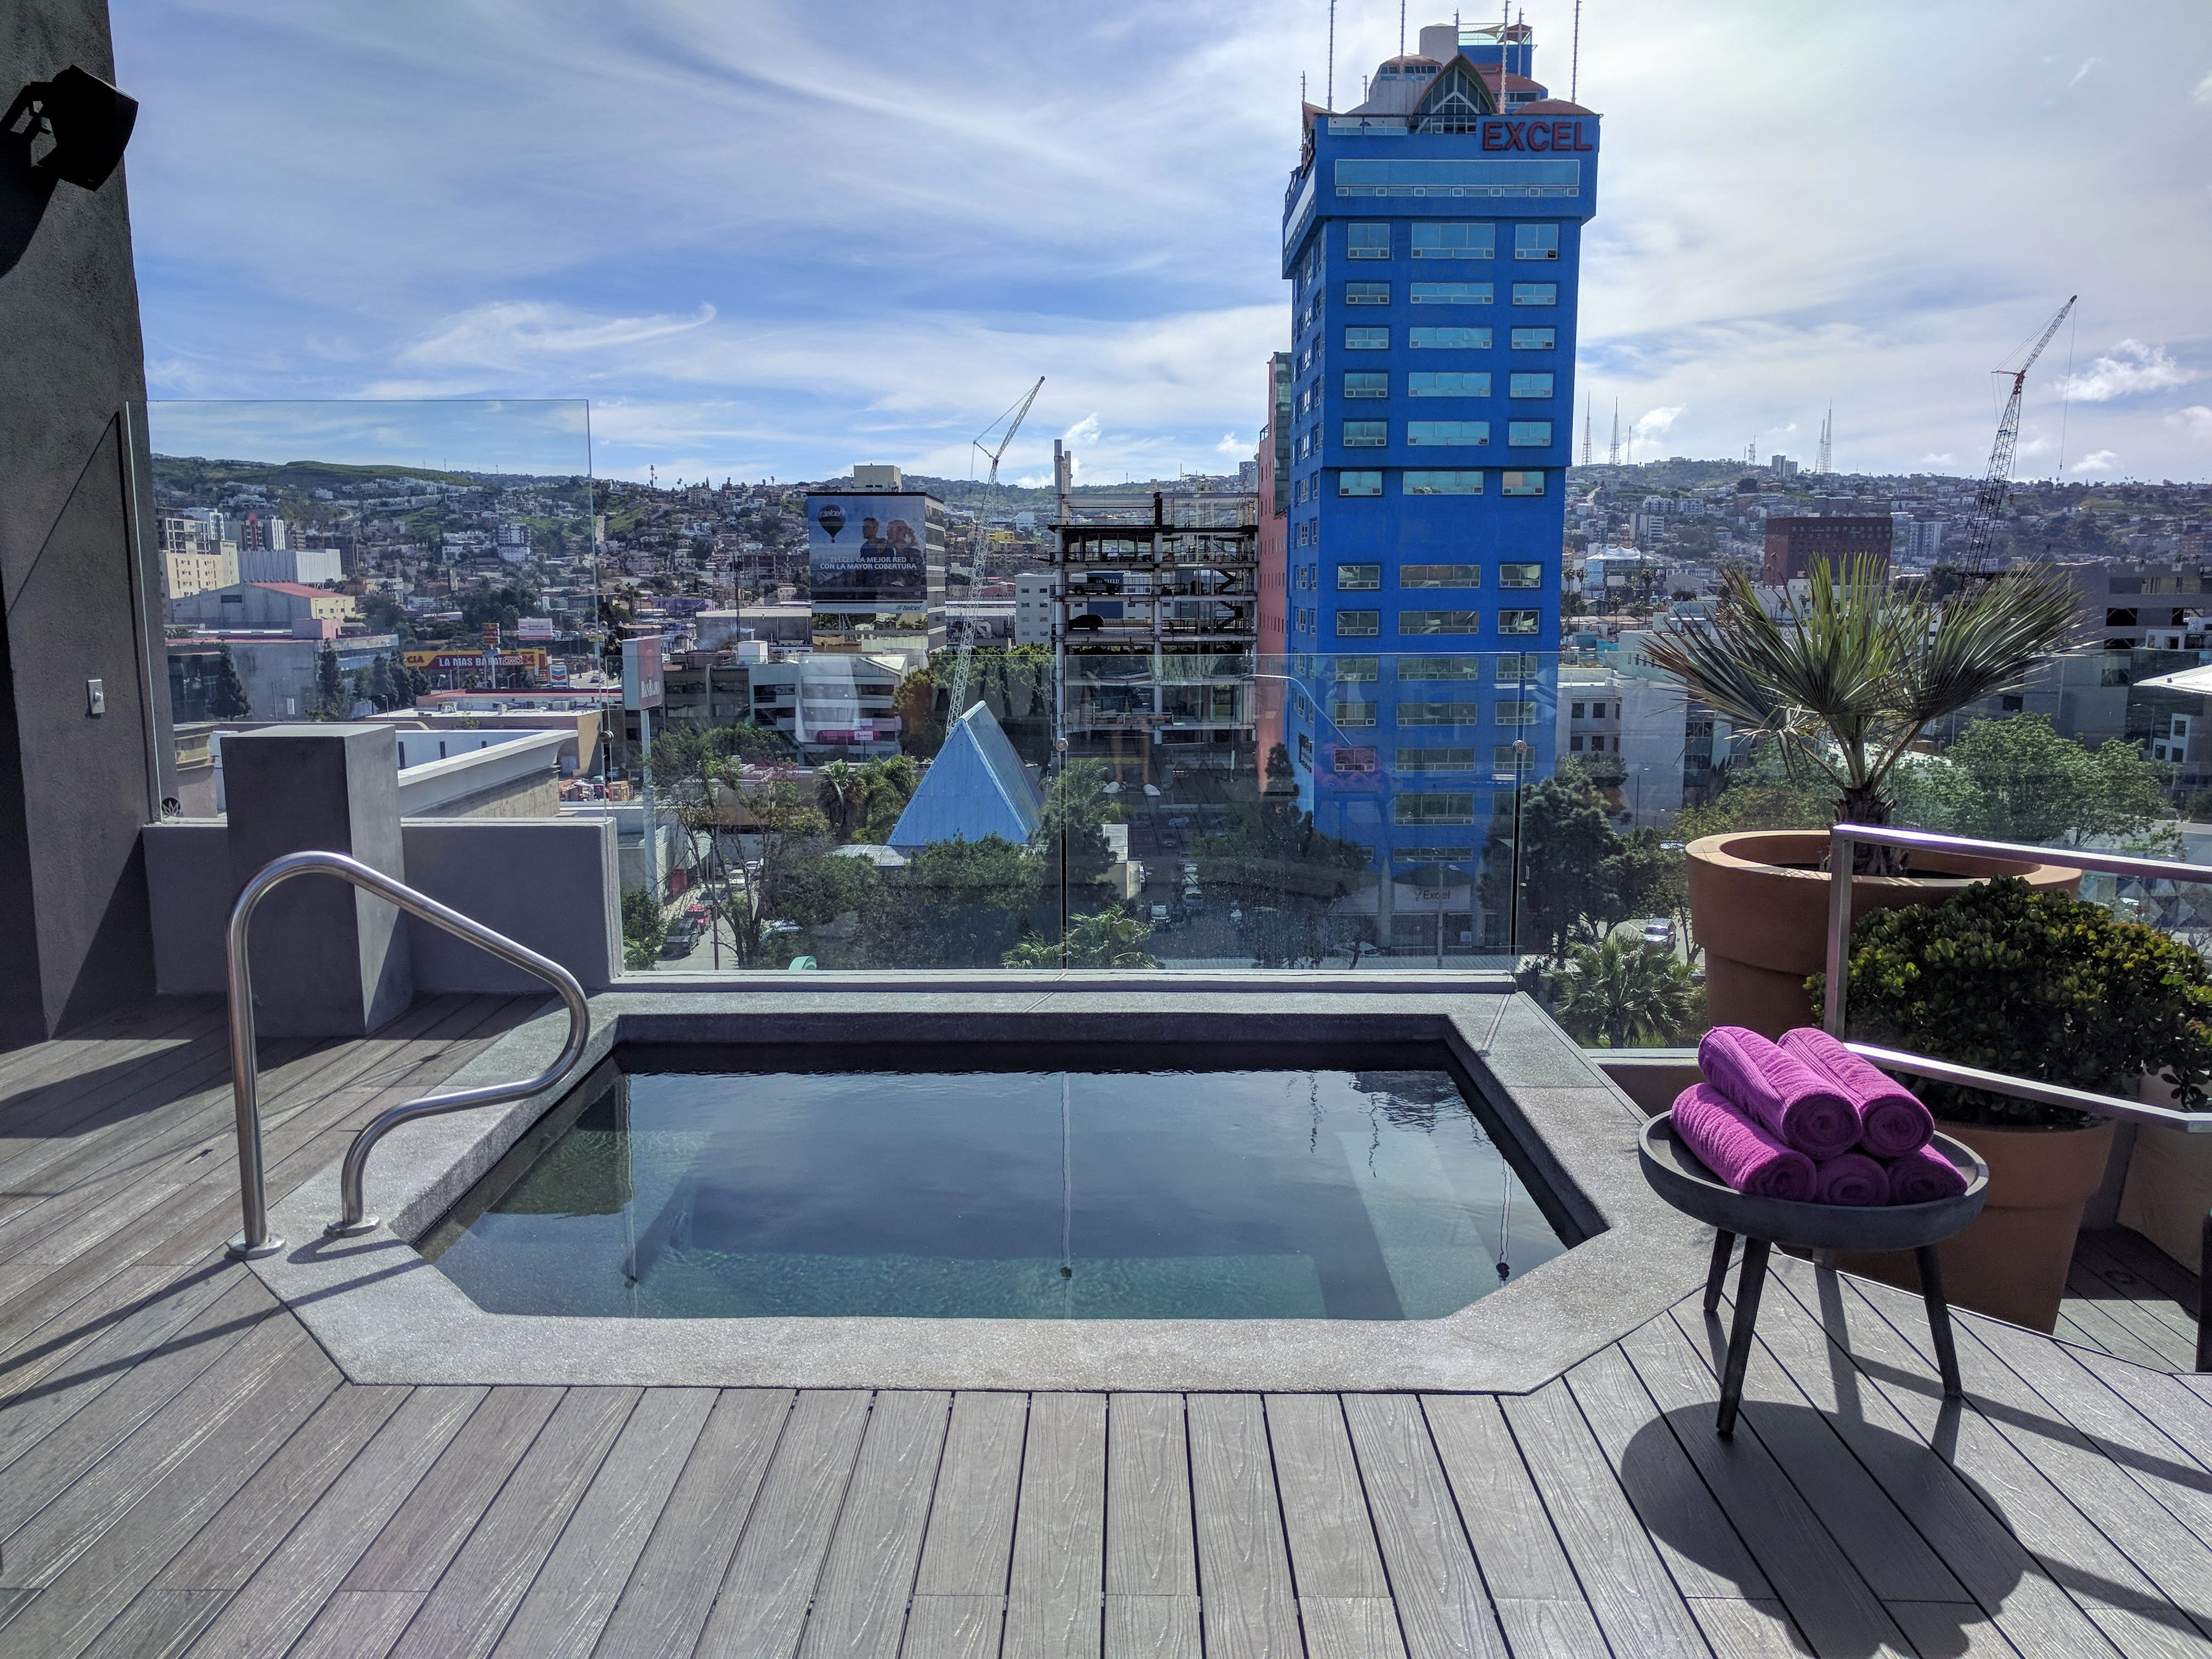 Hot tub on the rooftop